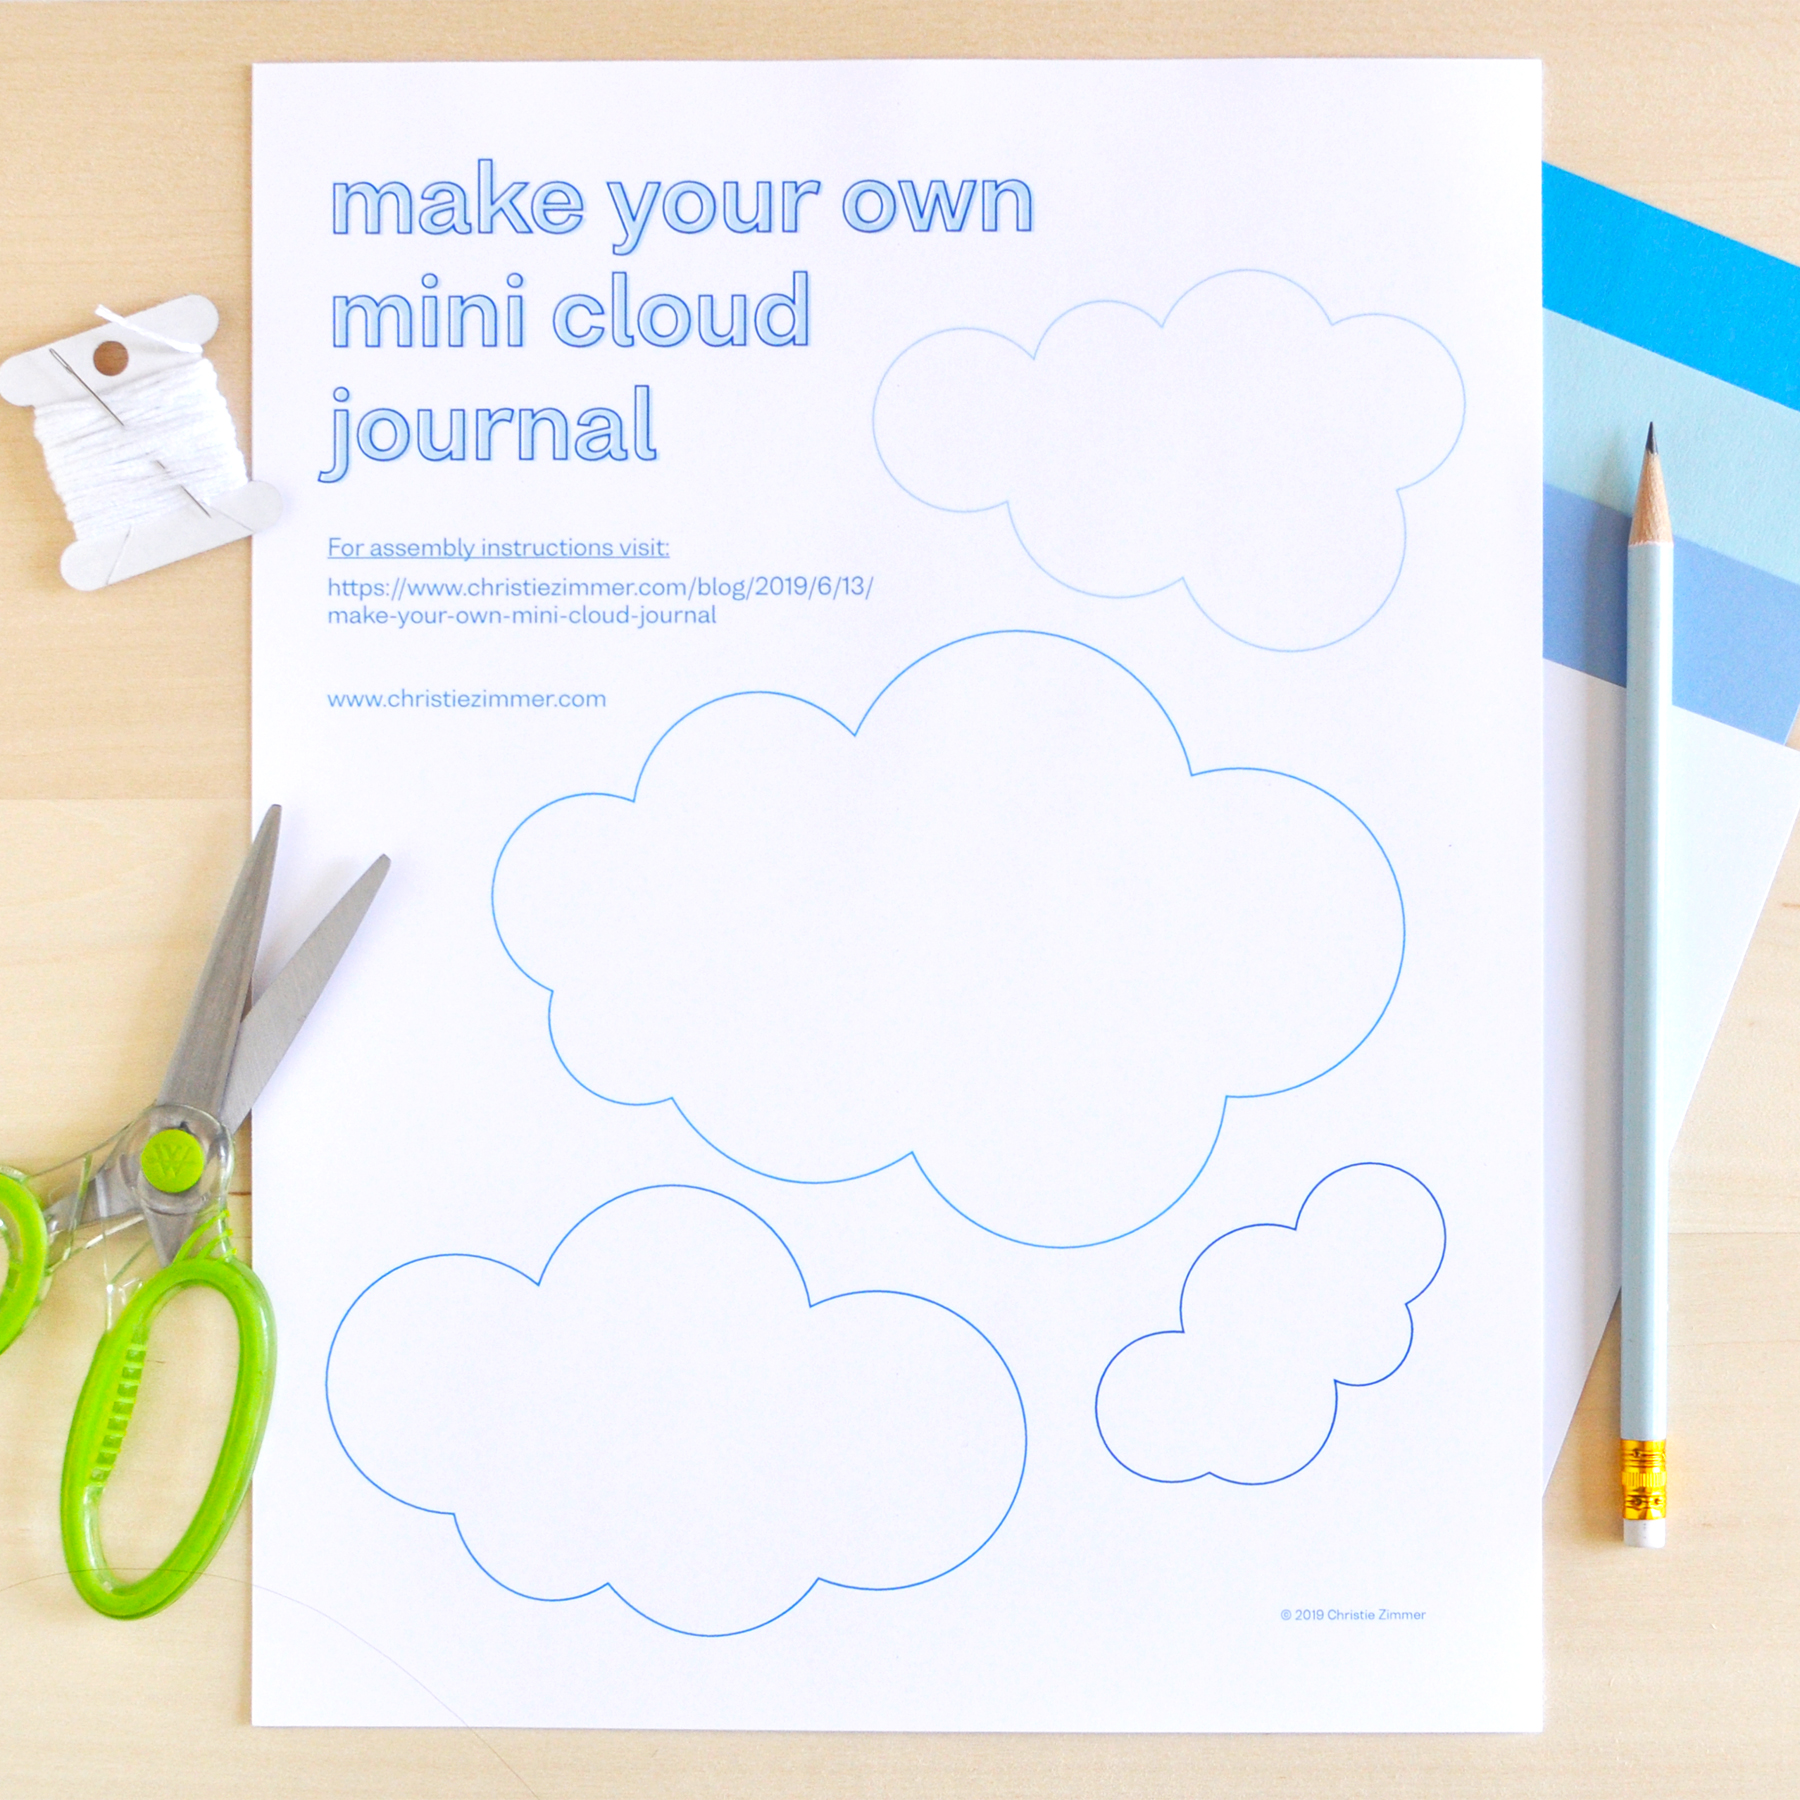 Make-Your-Own-Mini-Cloud-Journal---Image2.jpg